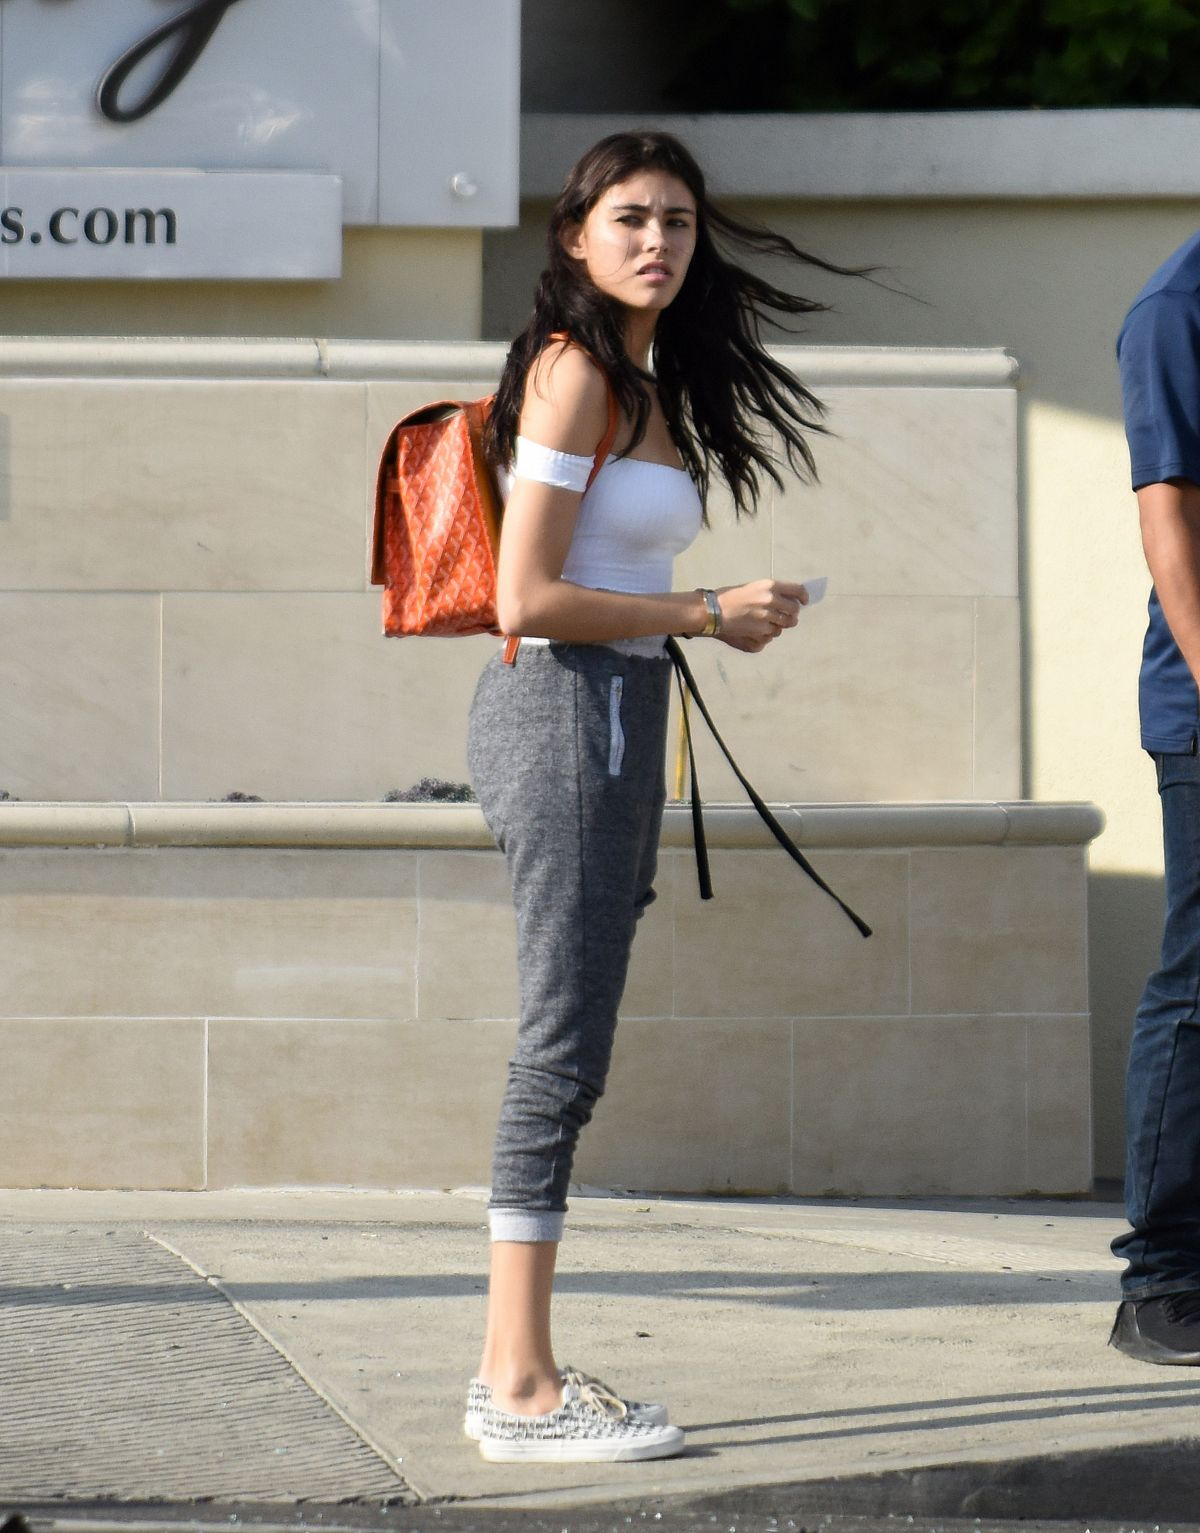 bf469d568853 MADISON BEER Escape a Car Crash in Beverly Hills 11/16/2016 - HawtCelebs